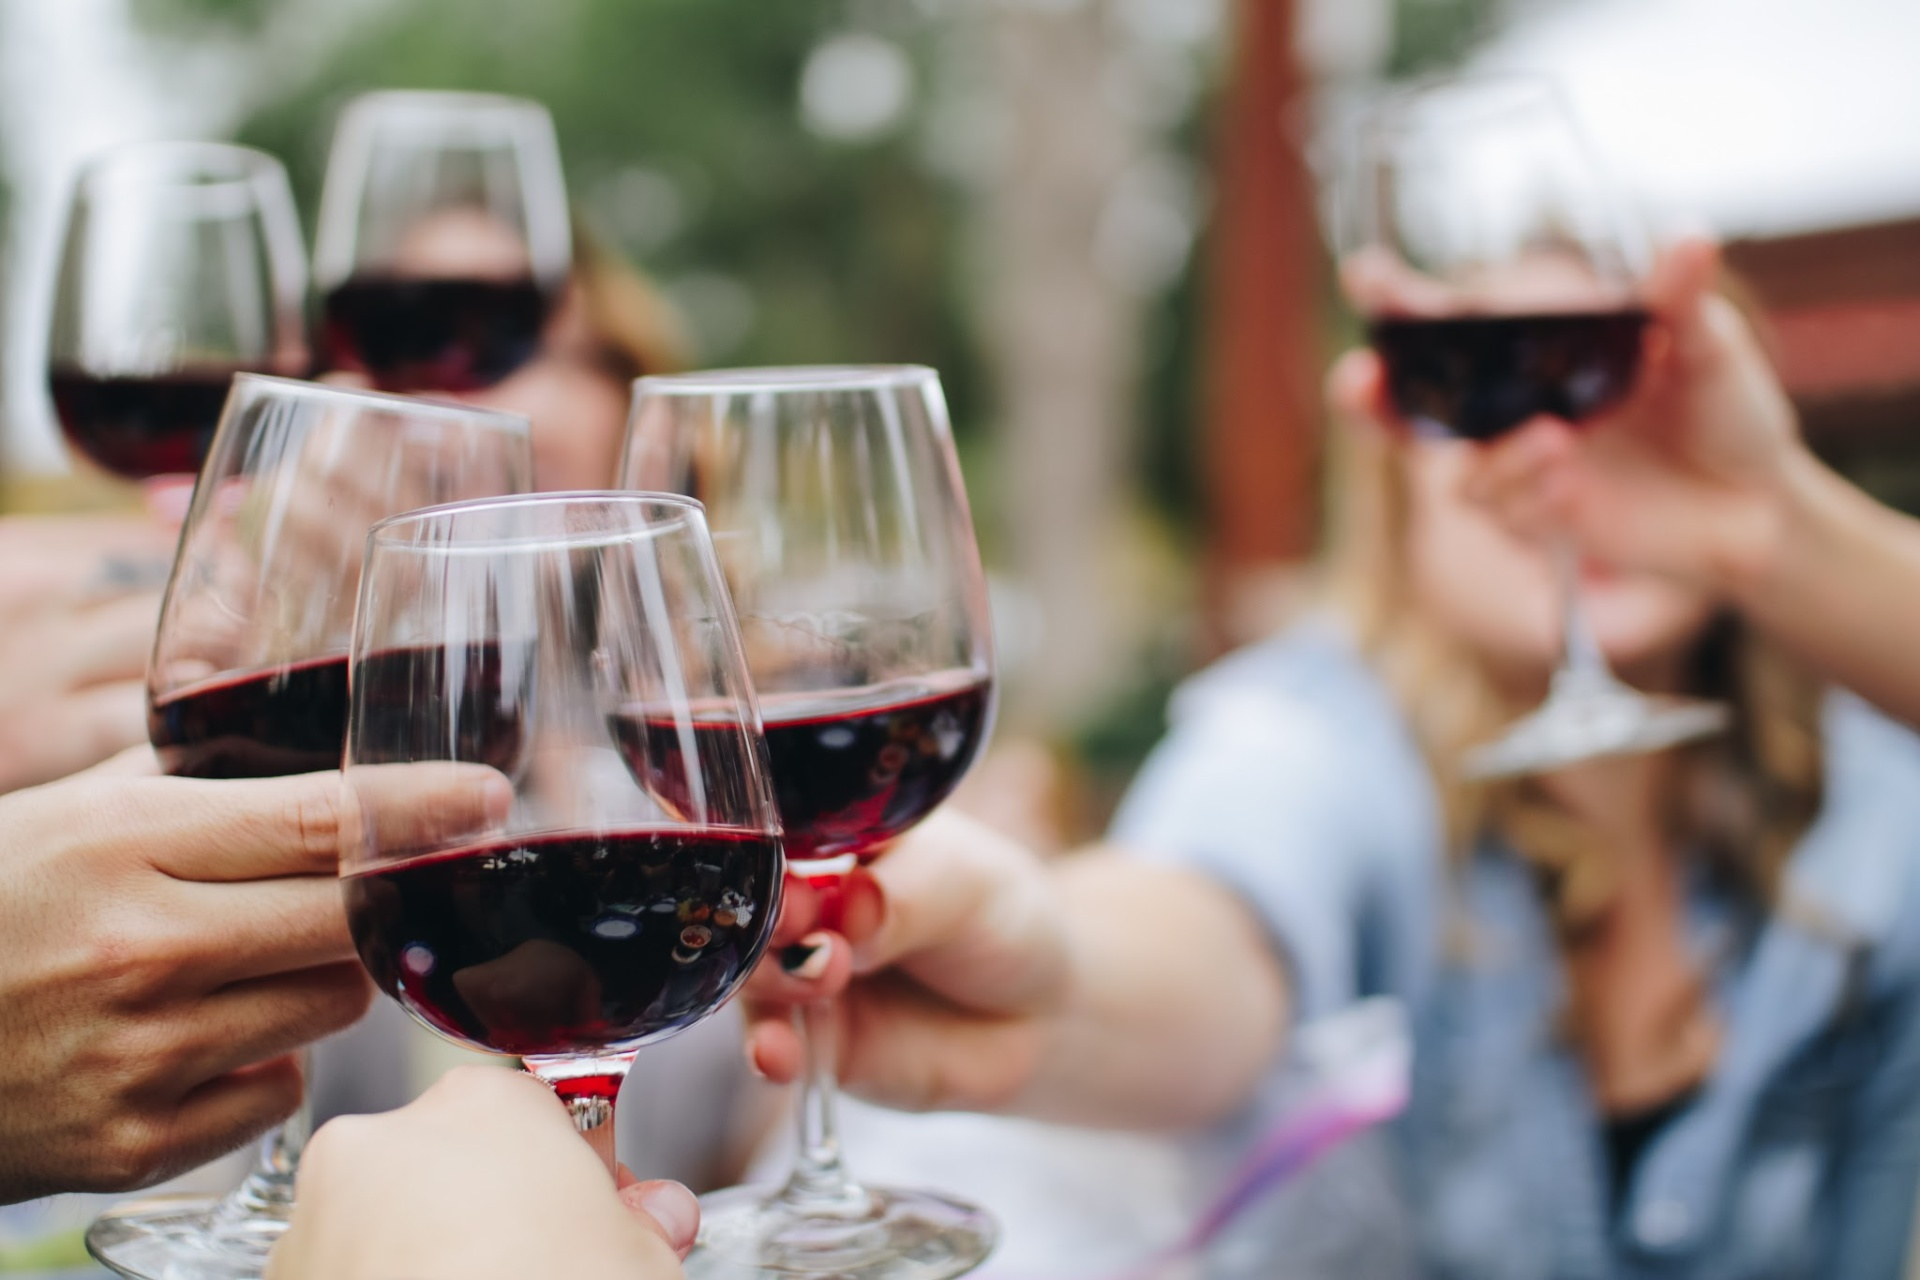 What are Red blend wines